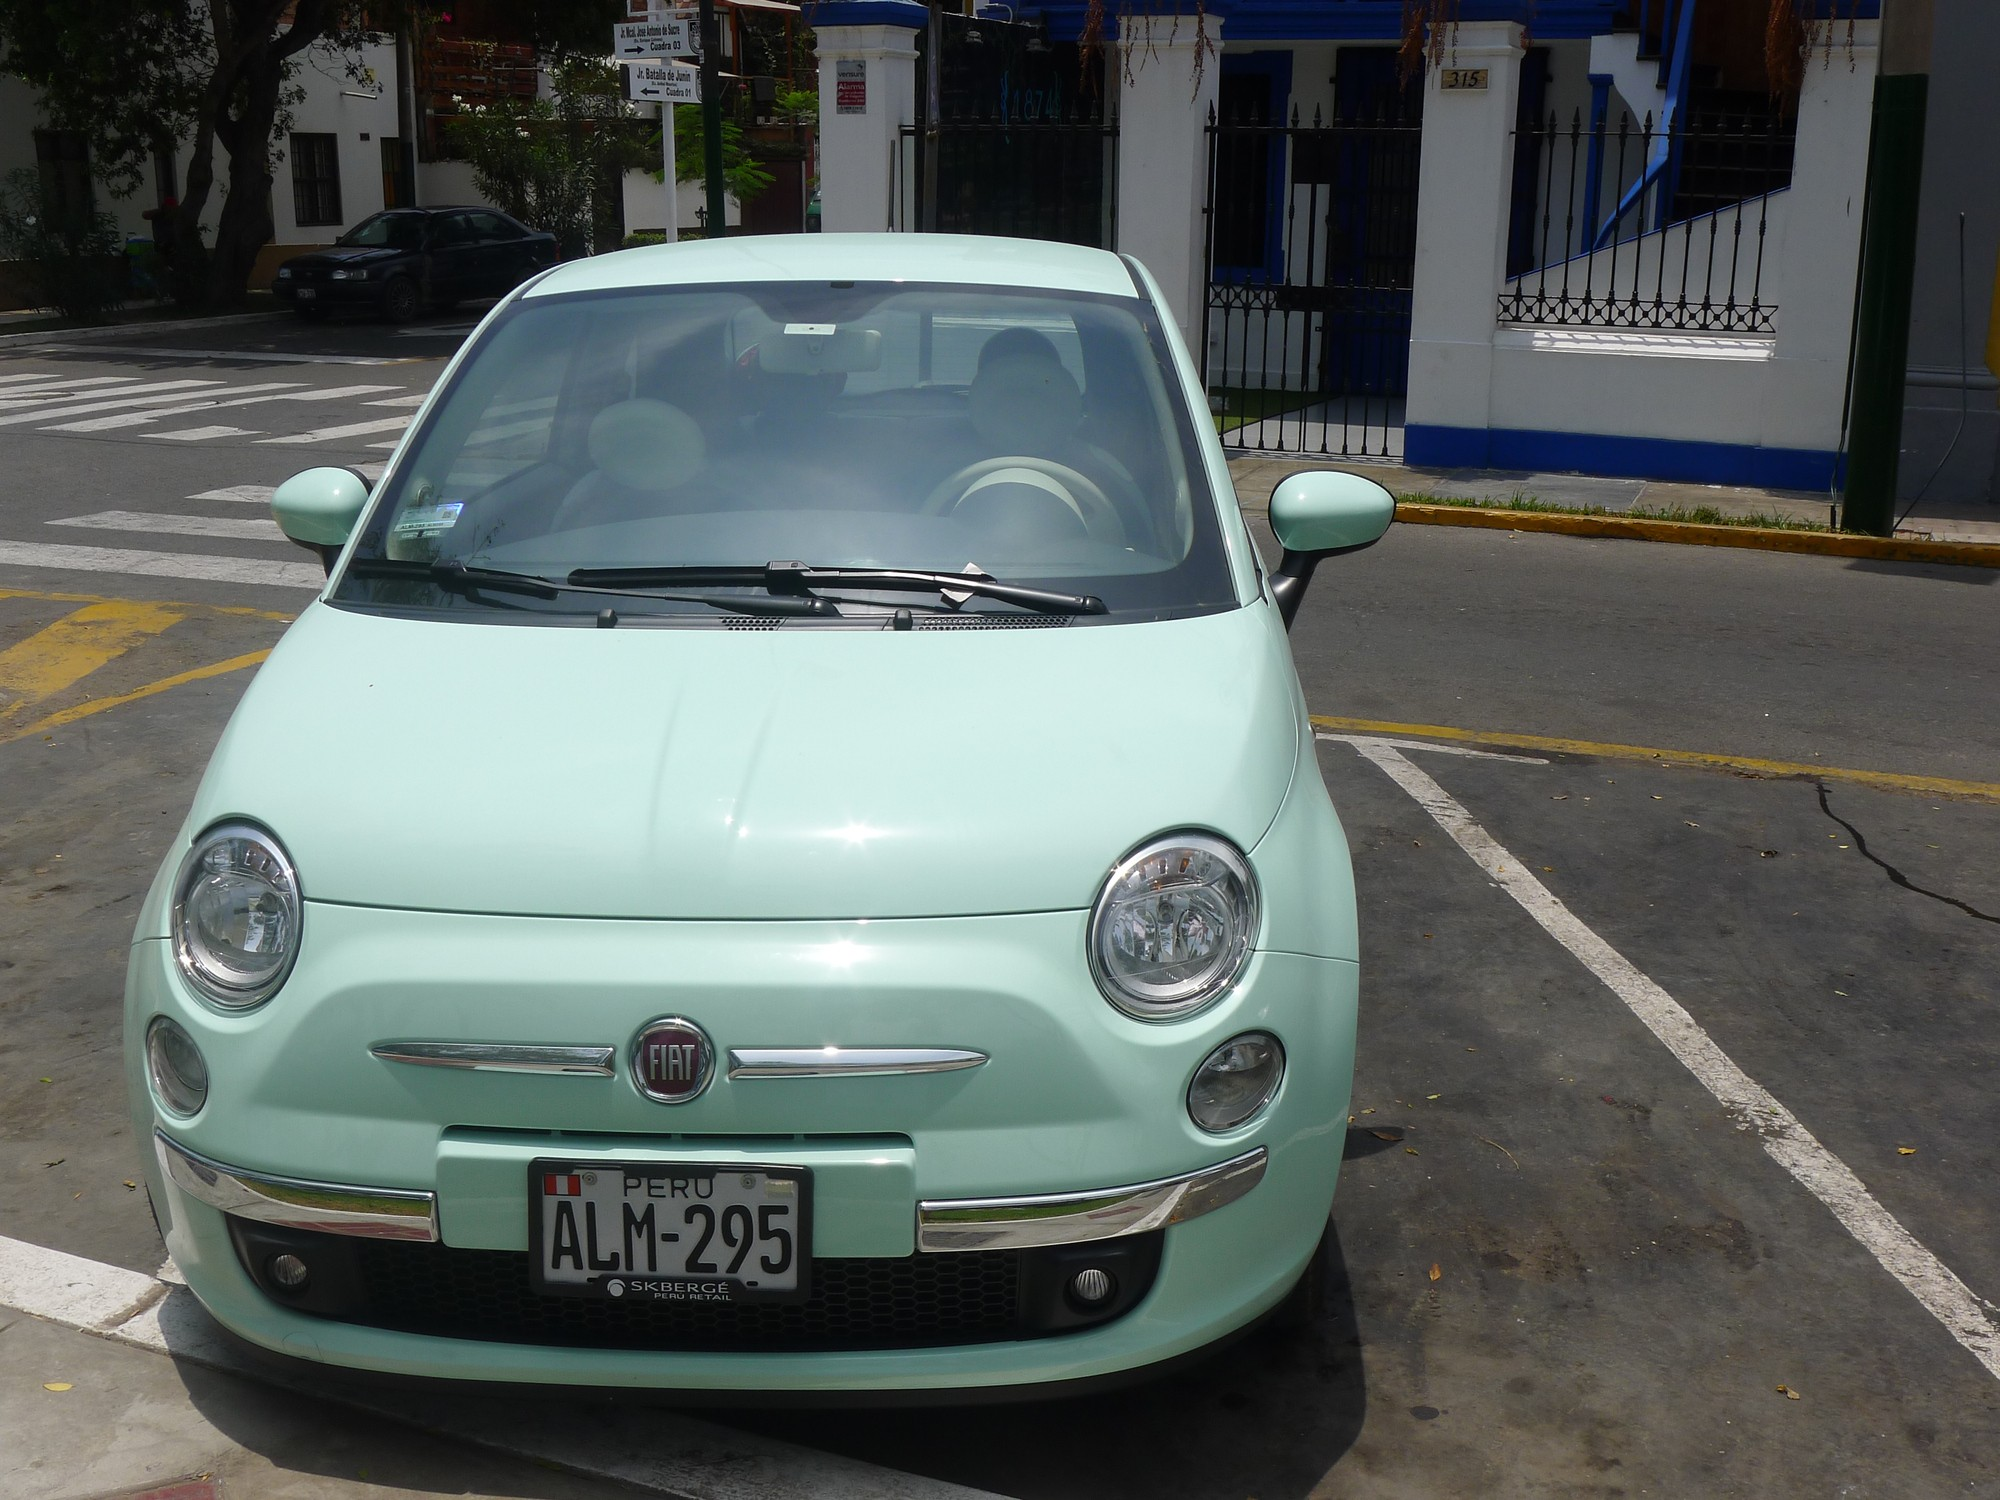 Mint green car